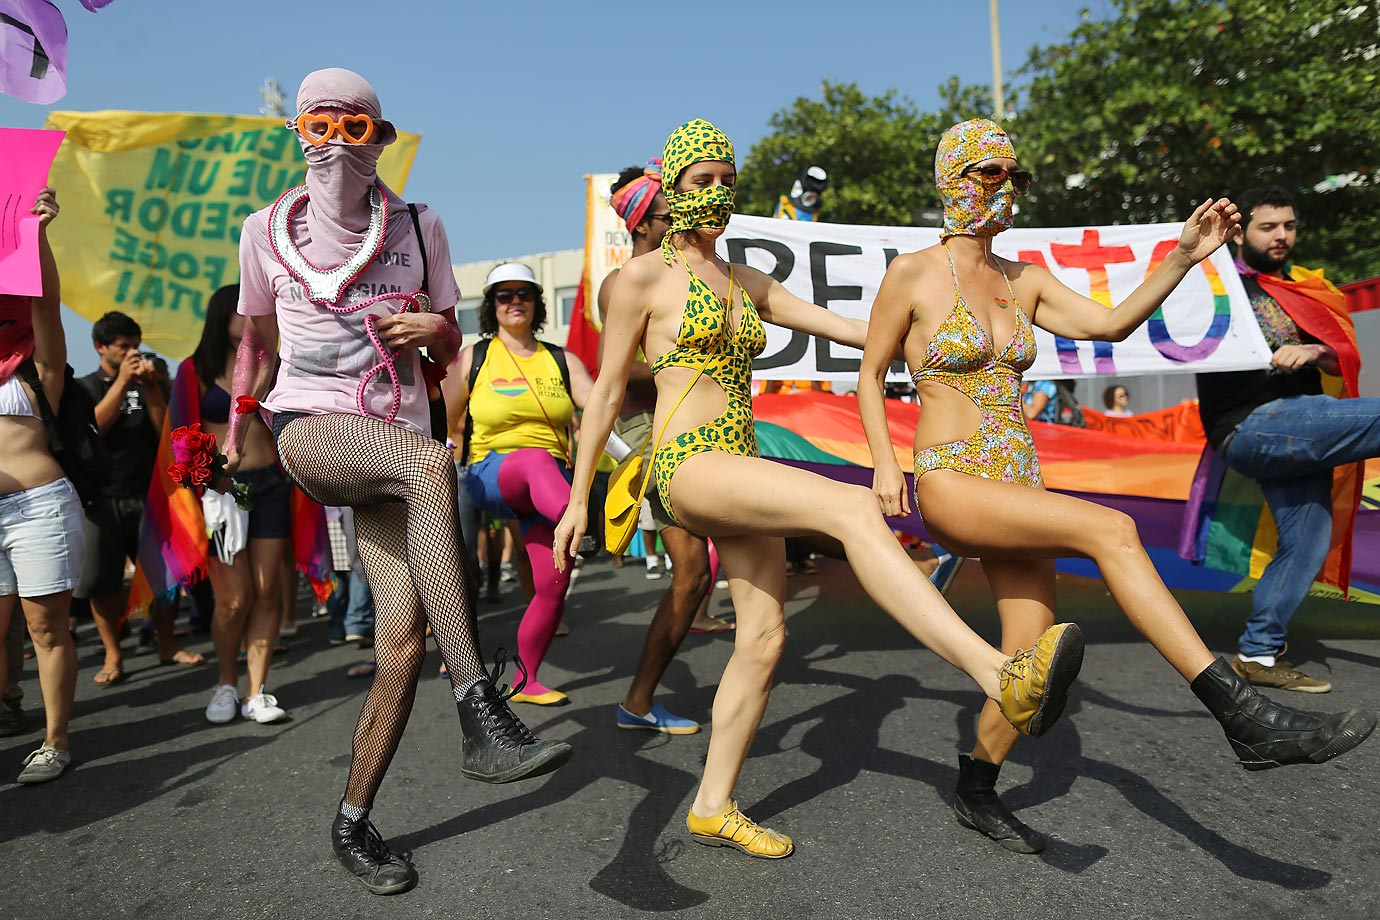 Even Gay rights supporters are getting their kicks at the World Cup in Rio de Janeiro.